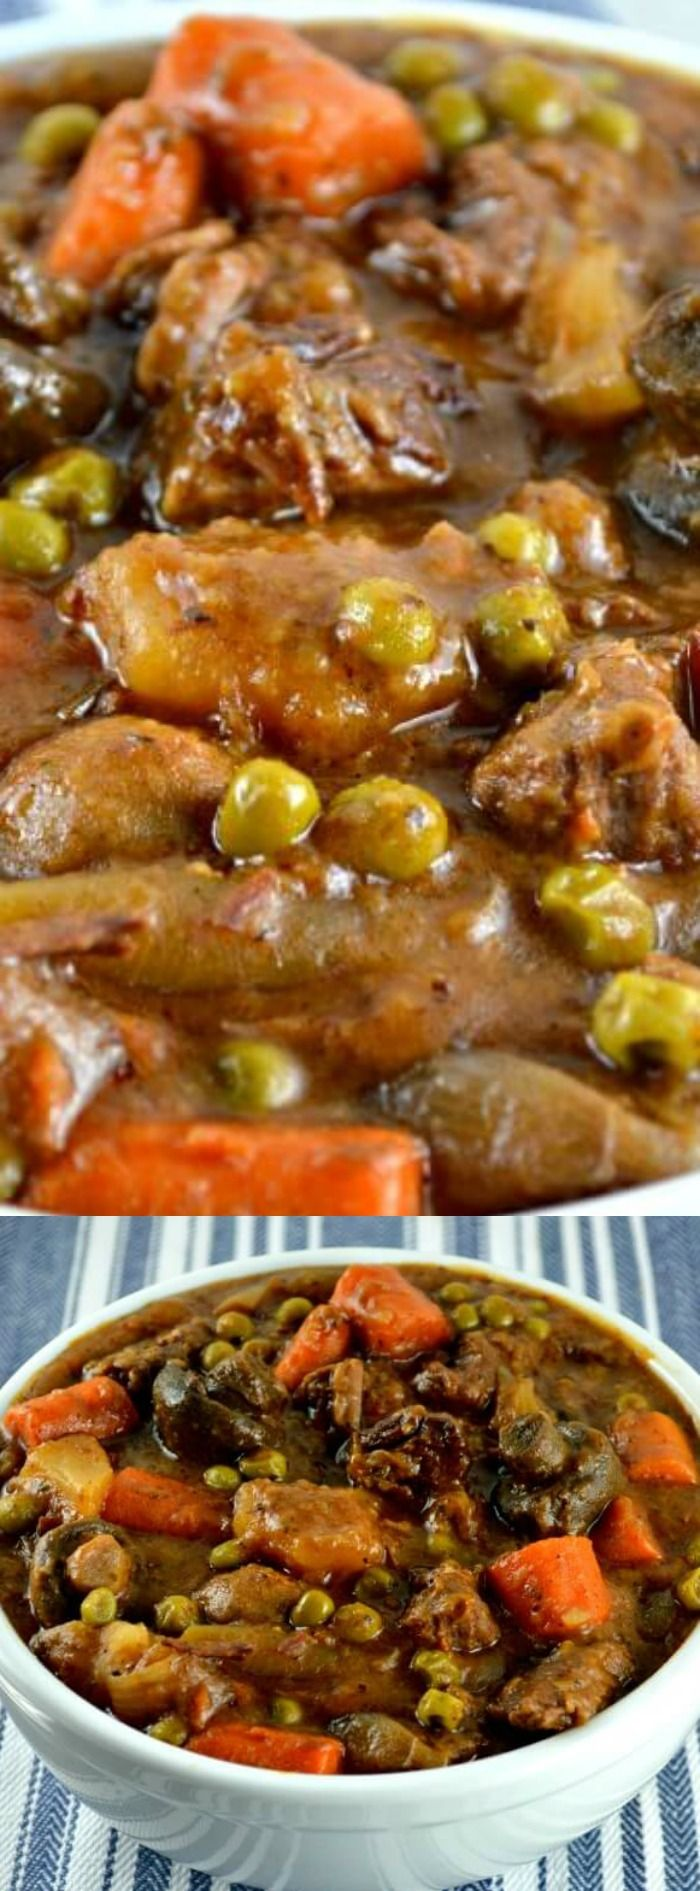 This is not just any beef stew… this is THE BEST Easy Crock Pot Beef Stew Recipe from Gonna Want Seconds. Look at that picture. Don't you just want to grab a spoon, fork, or whatever and just dig right in?!